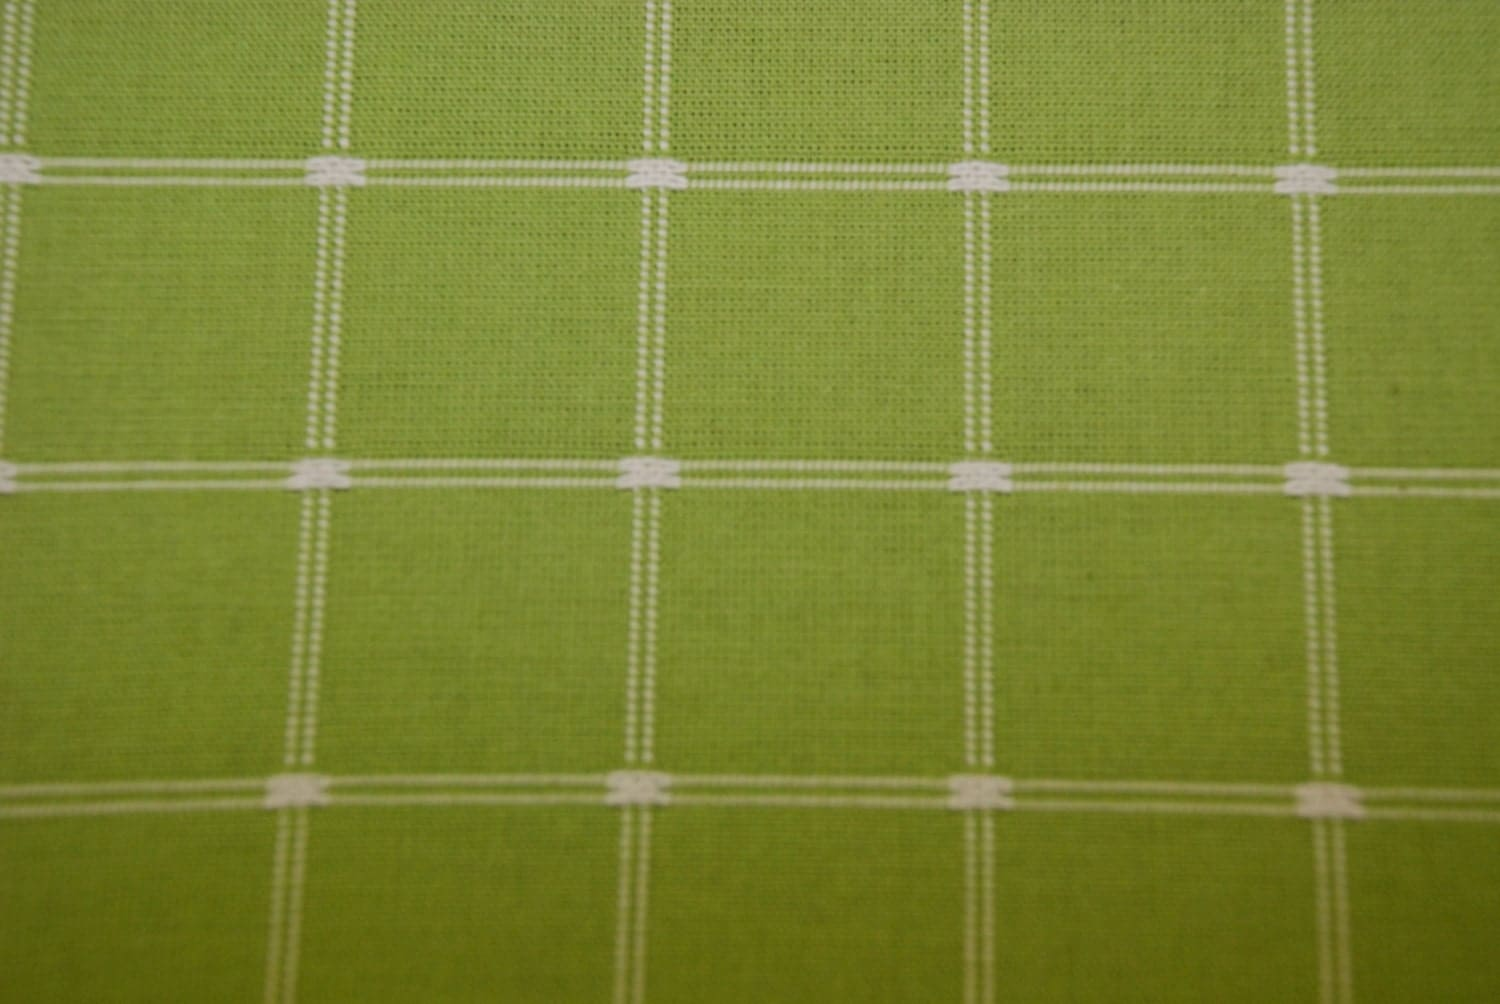 Grass Green Check Fabric Green Upholstery Green Drapery